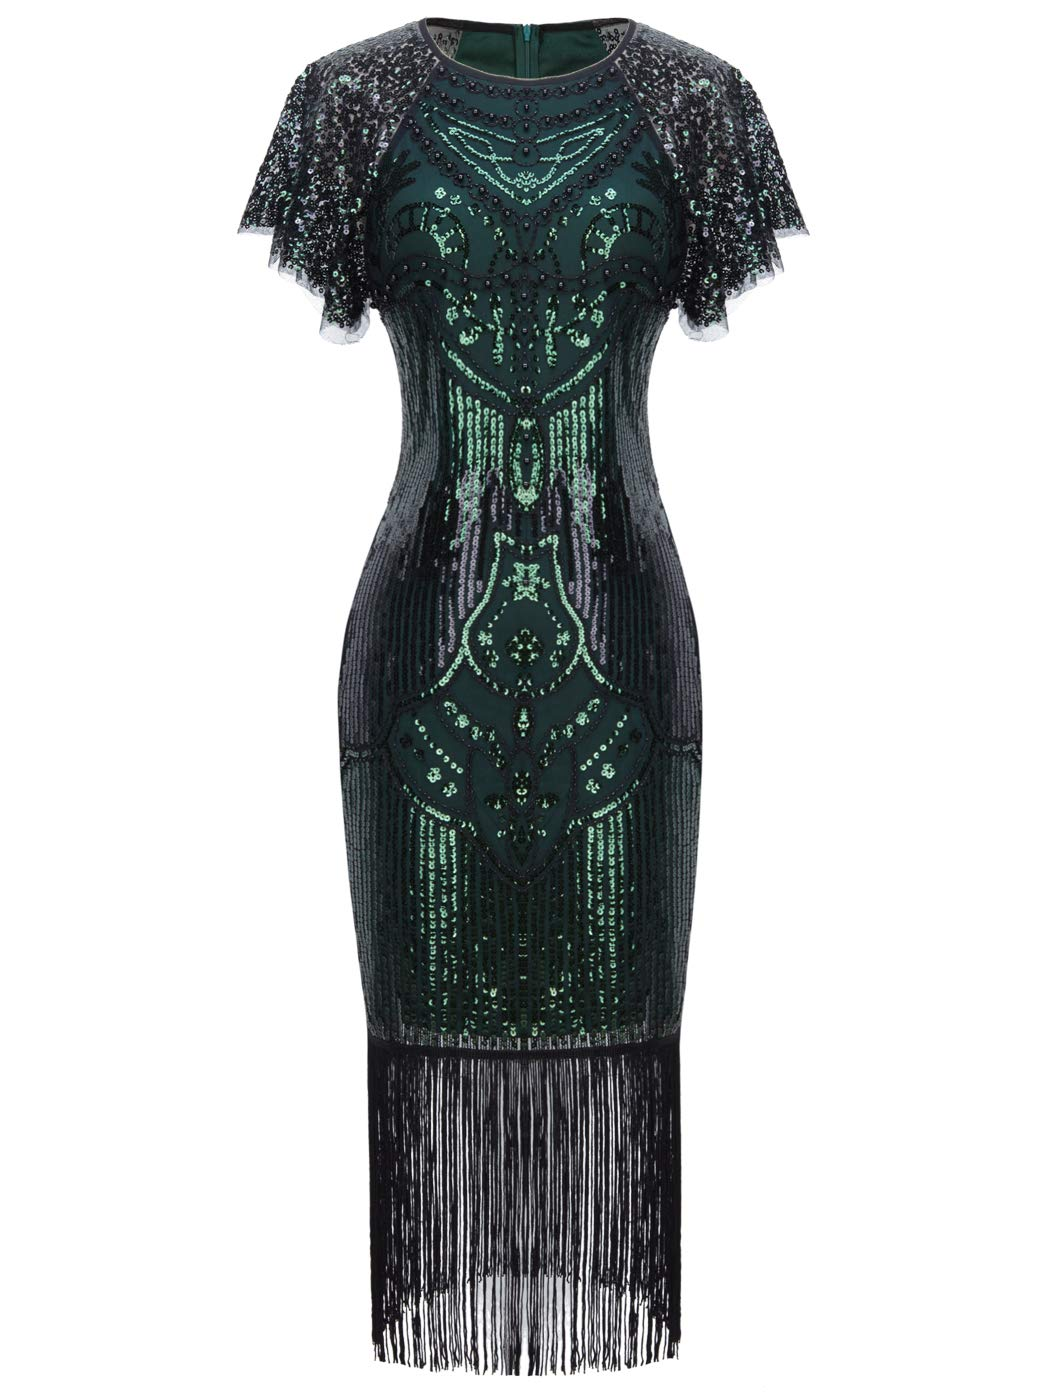 Party Dresses - 1920s Knee Length Flapper Party Cocktail Dress With Sequined Cap Sleeve Layer Tassels Hem